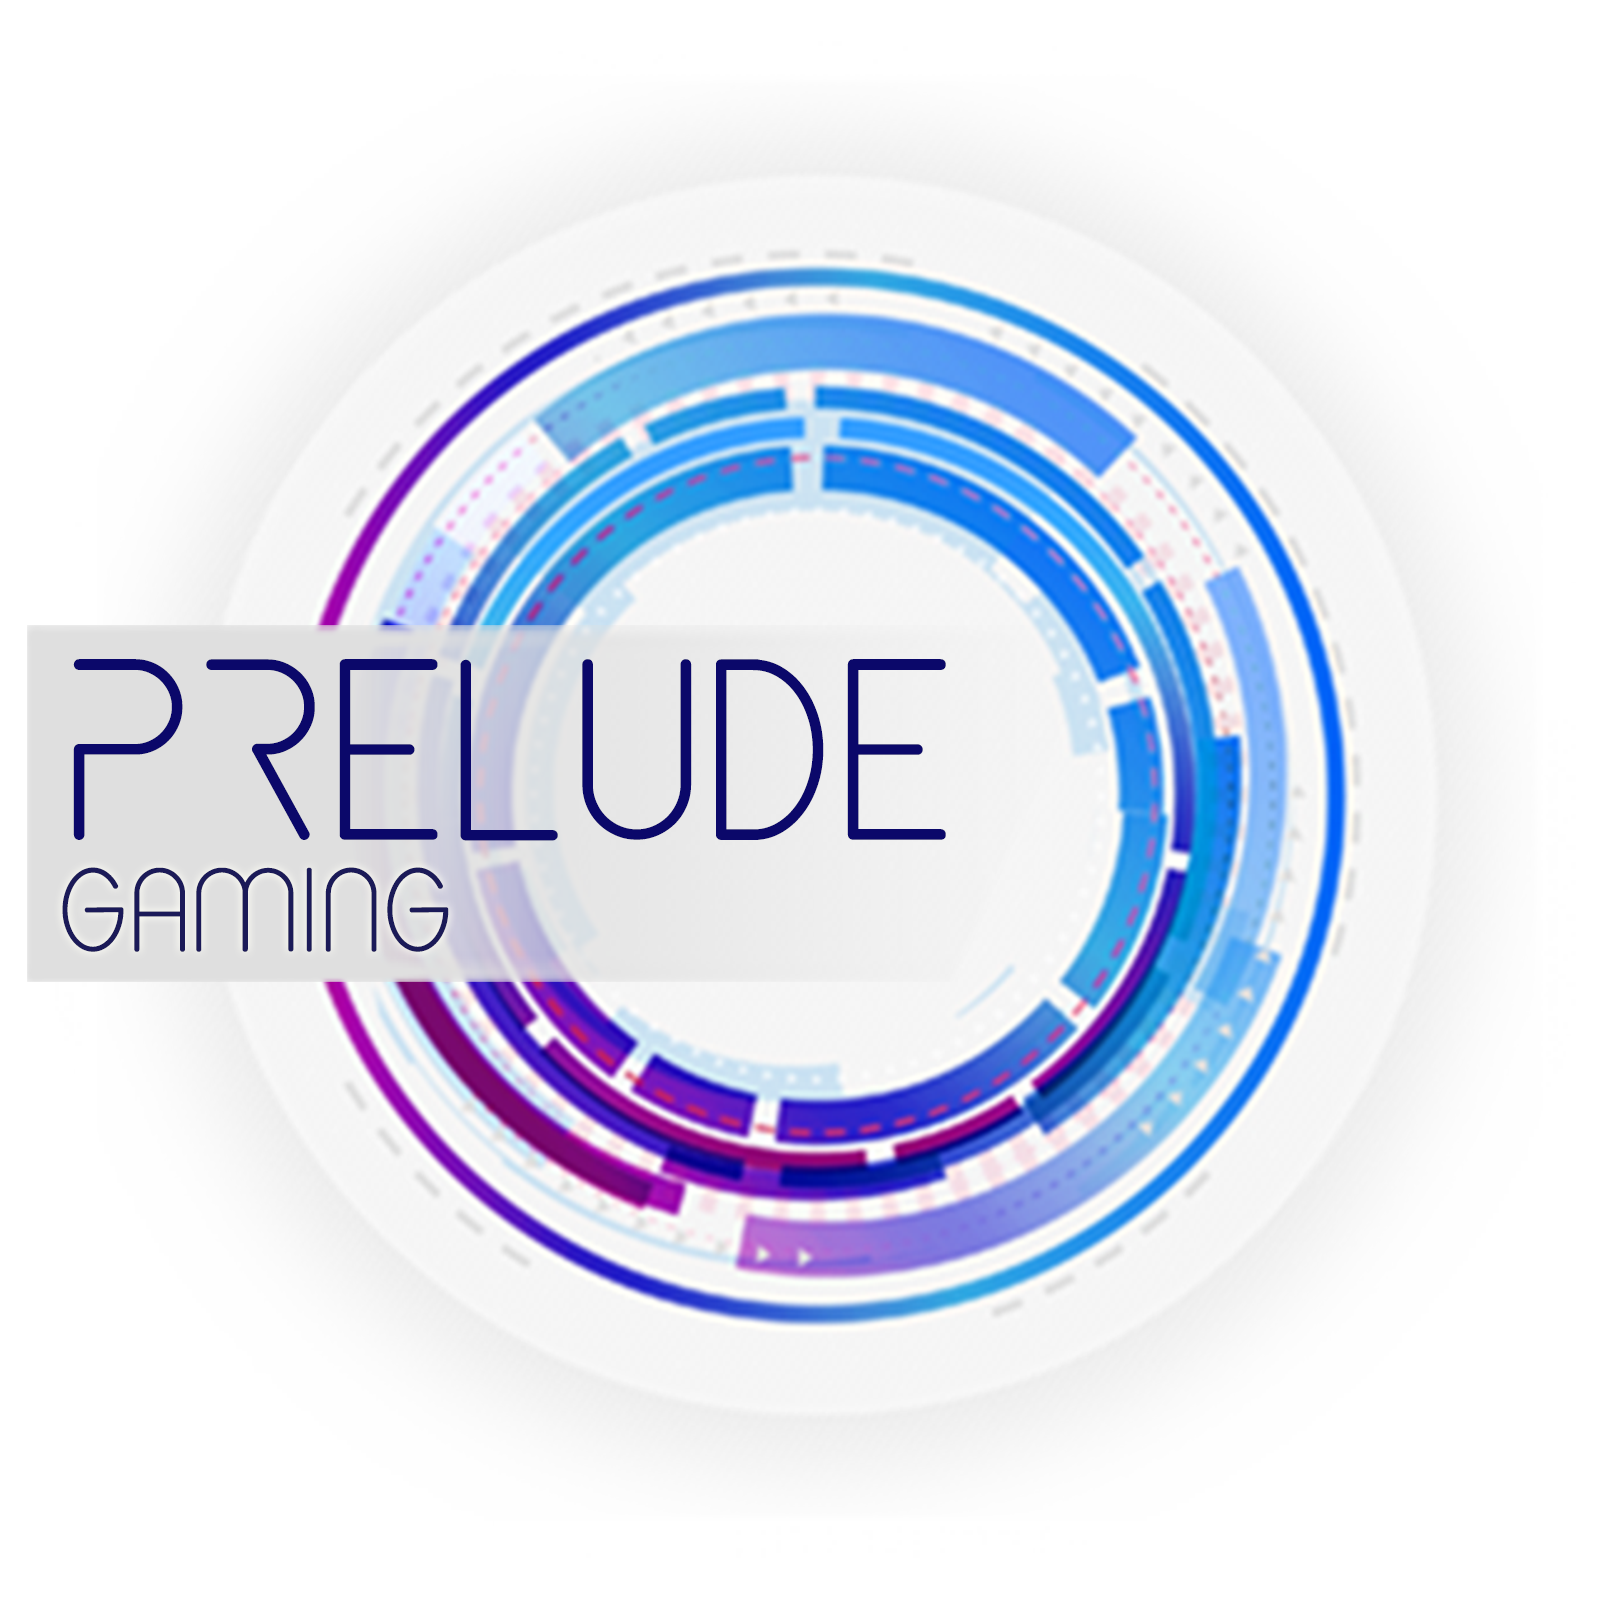 Prelude Gaming